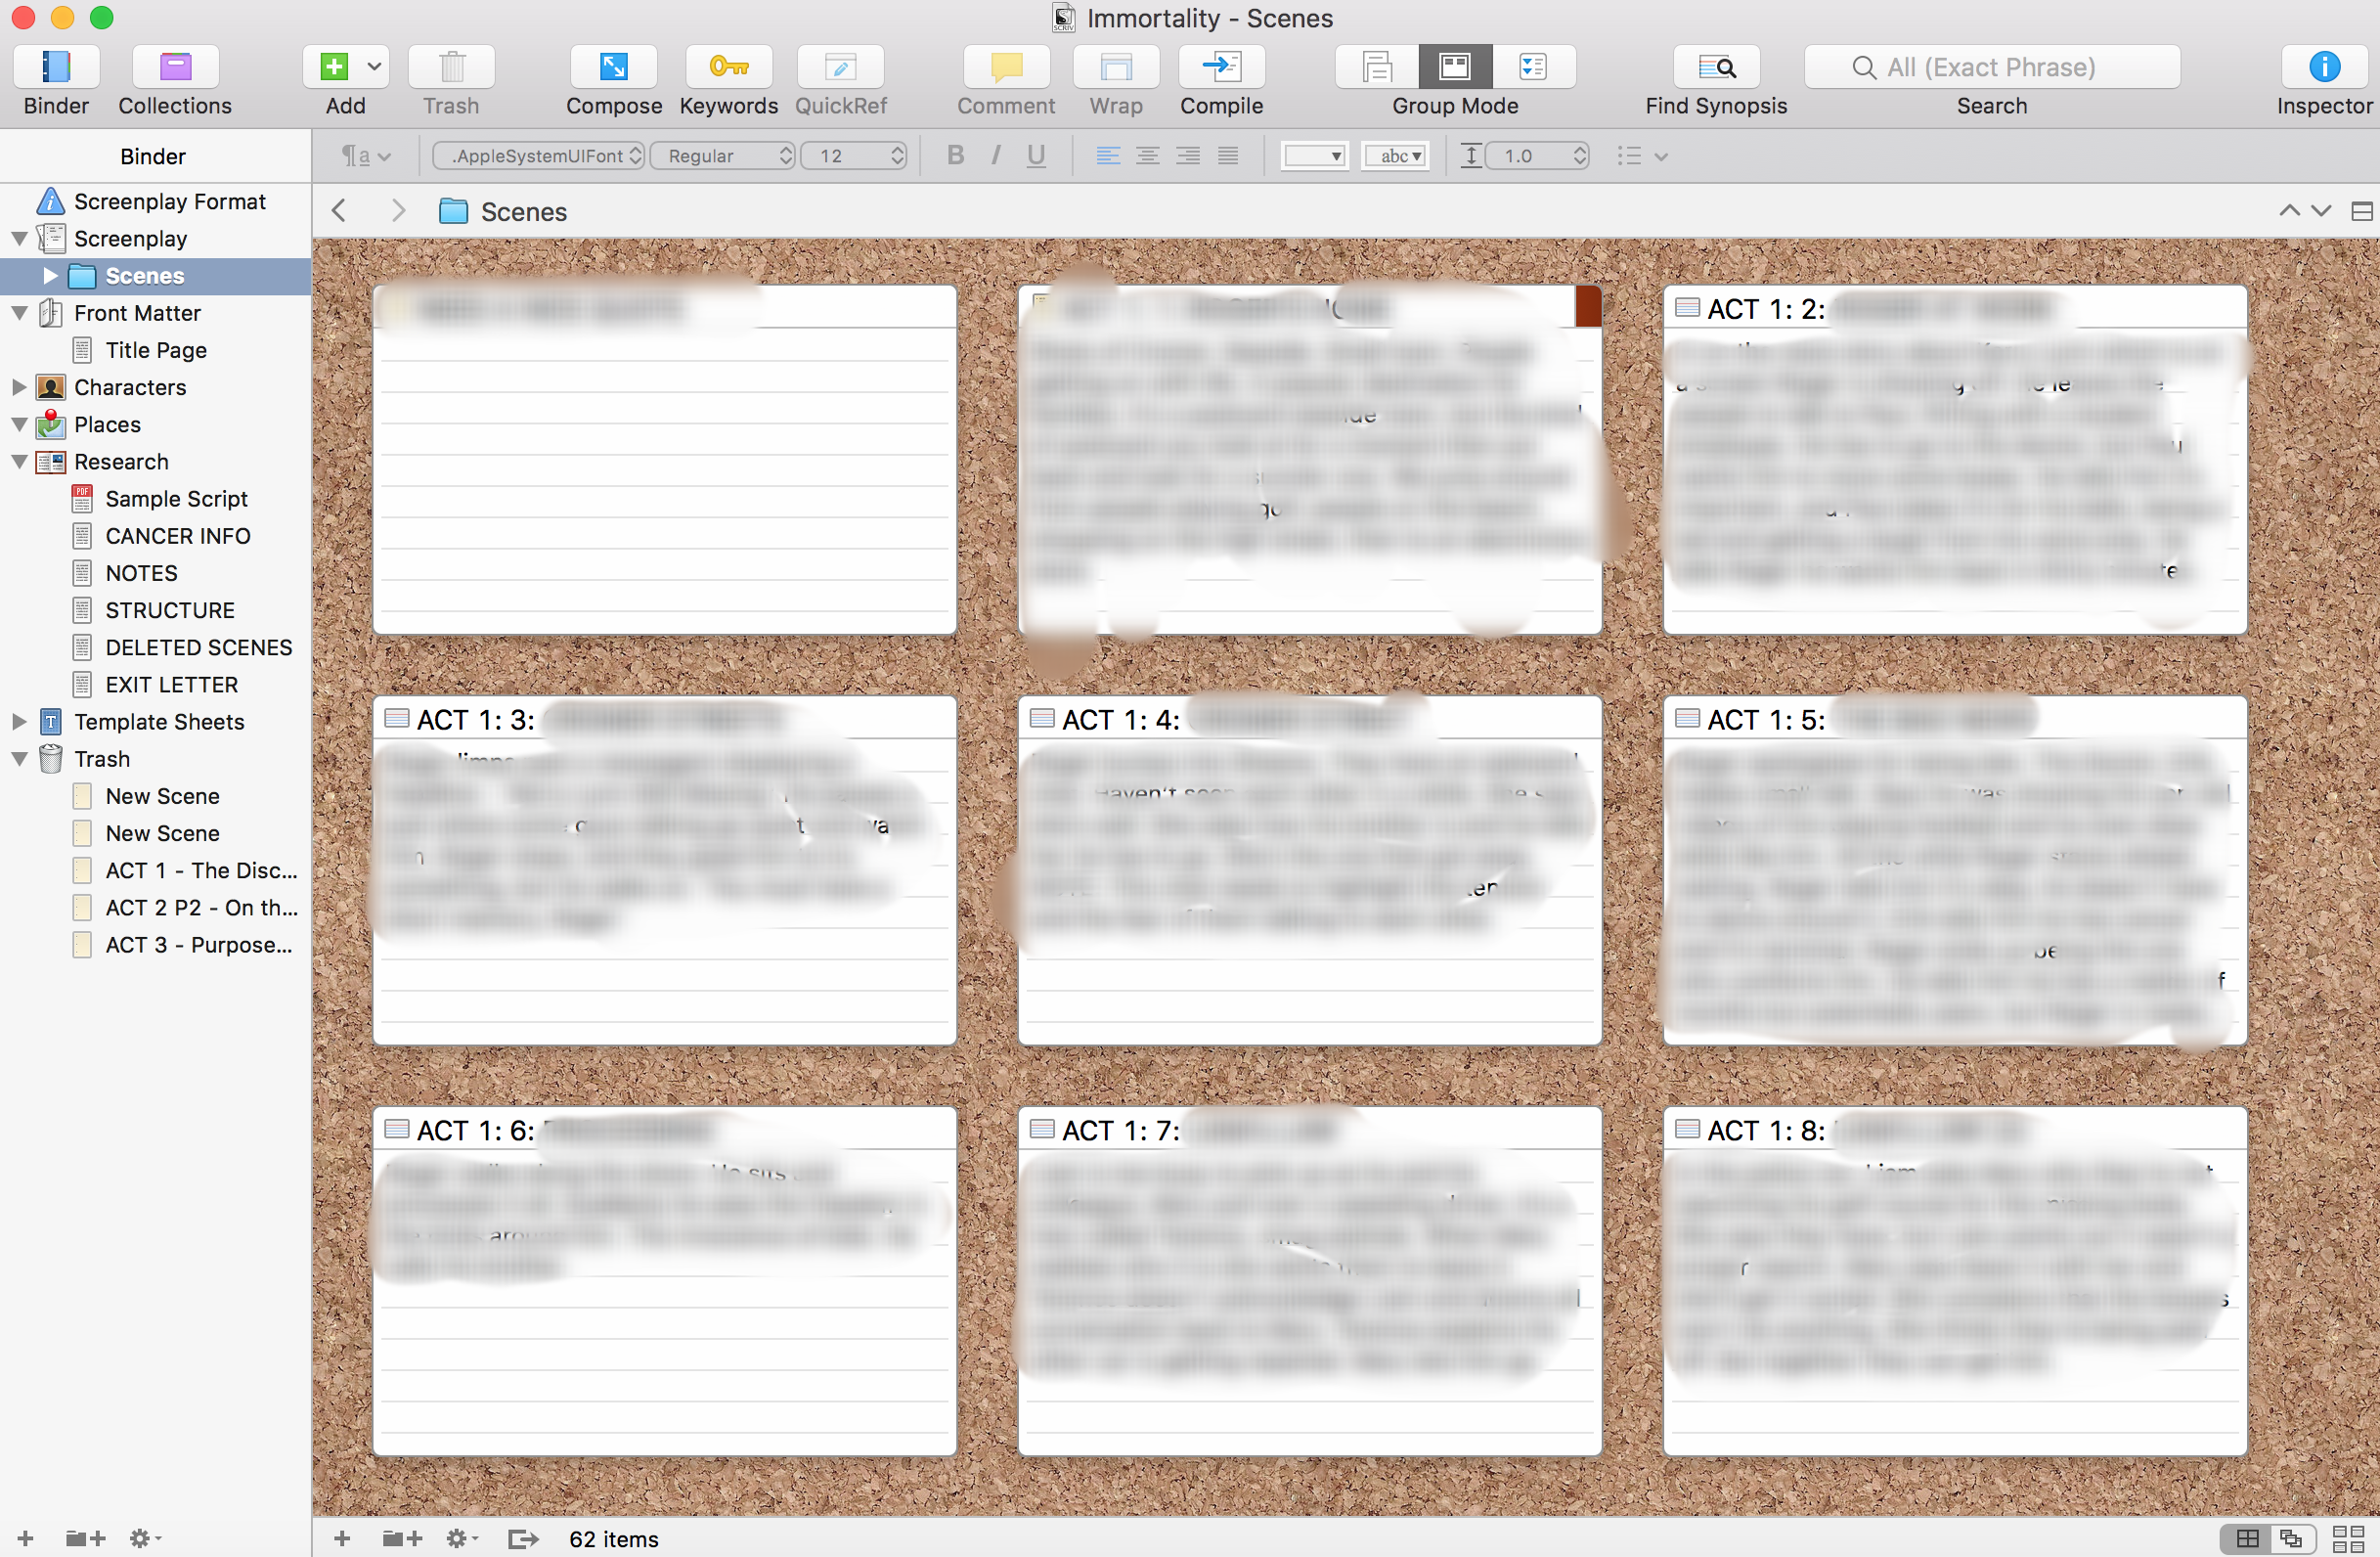 And for screenplays you have the corkboard layout so you can move scenes around!